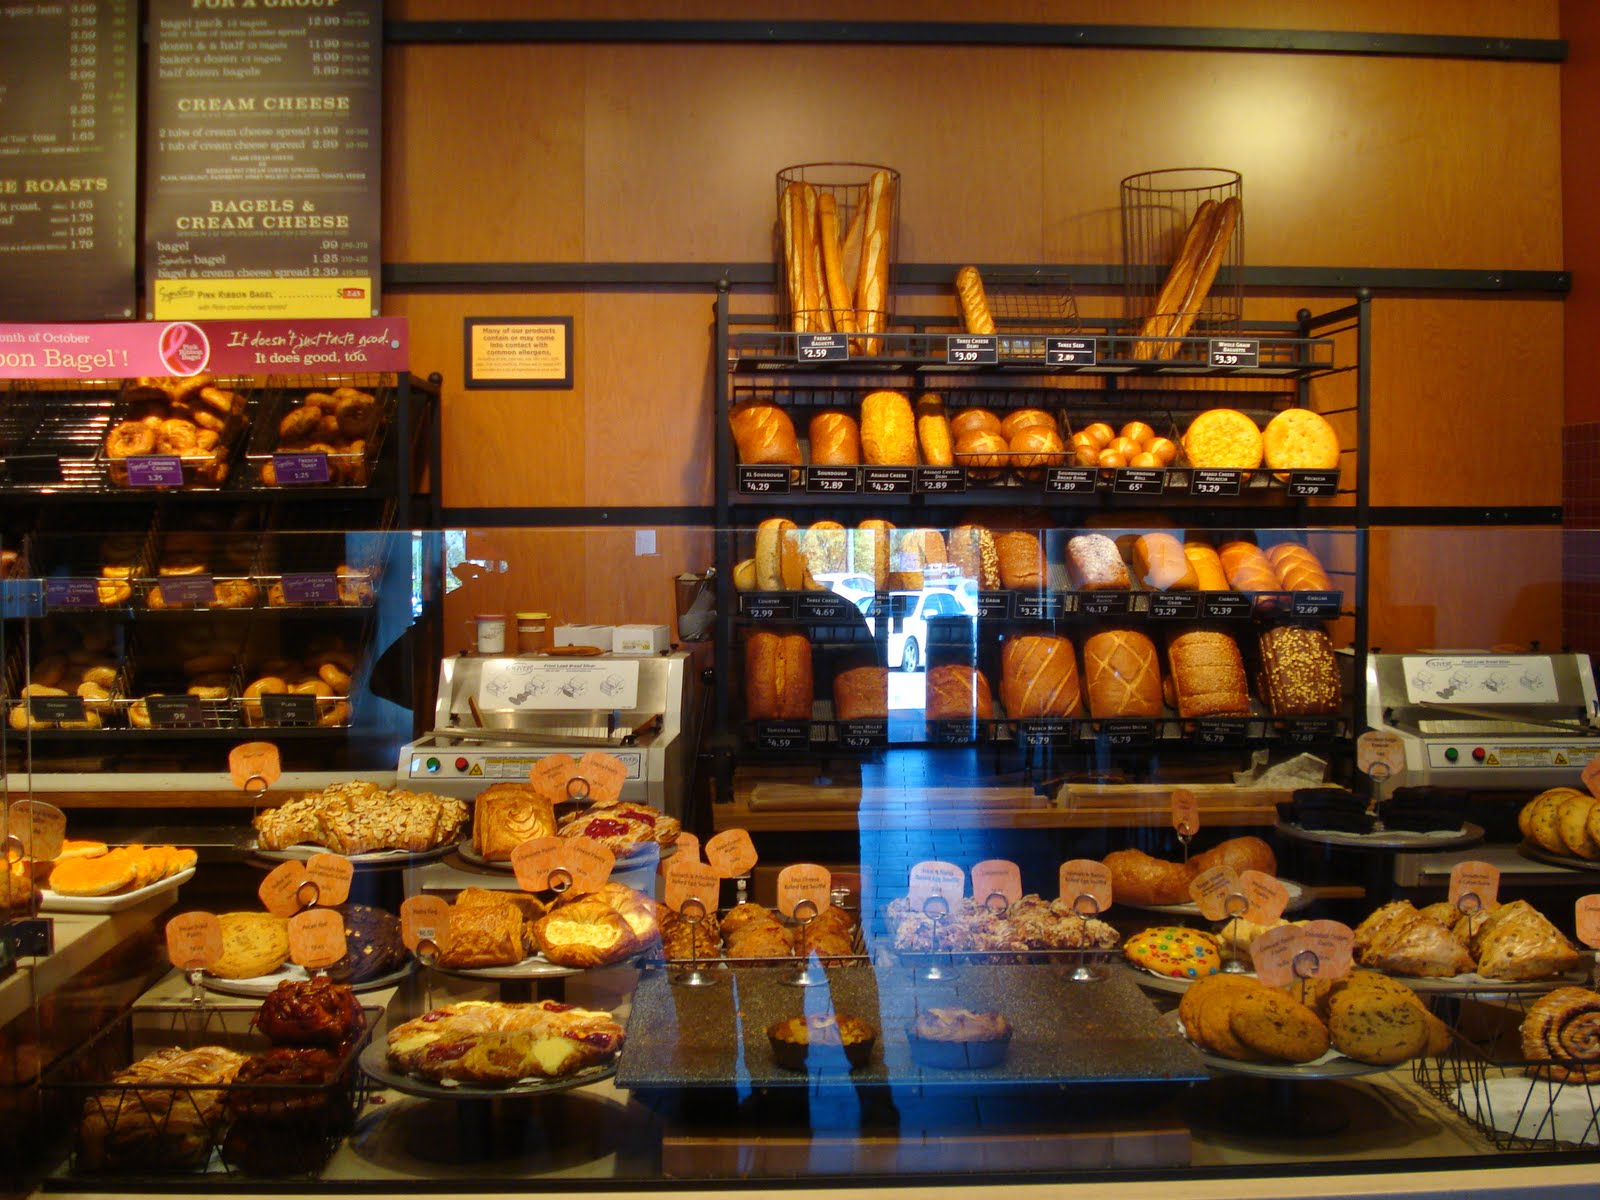 Panera Bread http://julieloveschar.blogspot.com/2010/10/panera-bread.html